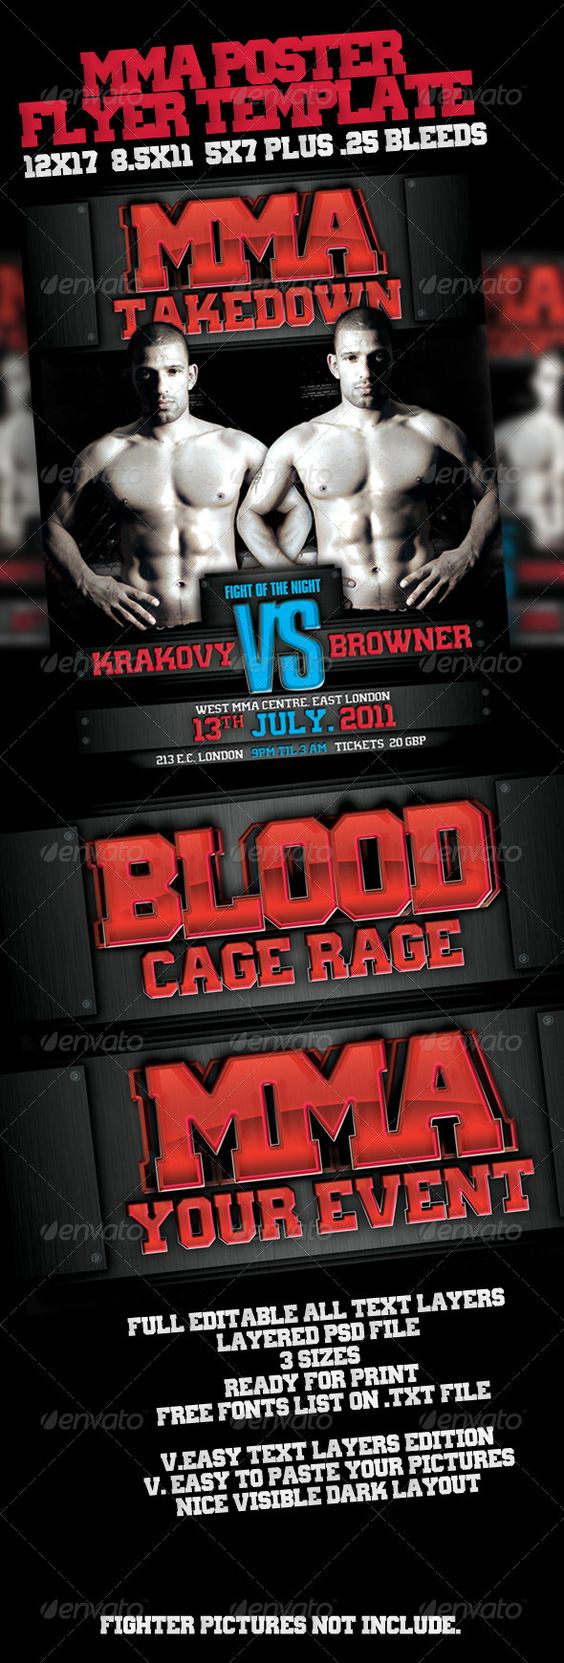 MMA Event Poster — Photoshop PSD #flyer #mma flyer • Available here → https://graphicriver.net/item/mma-event-poster/460374?ref=pxcr